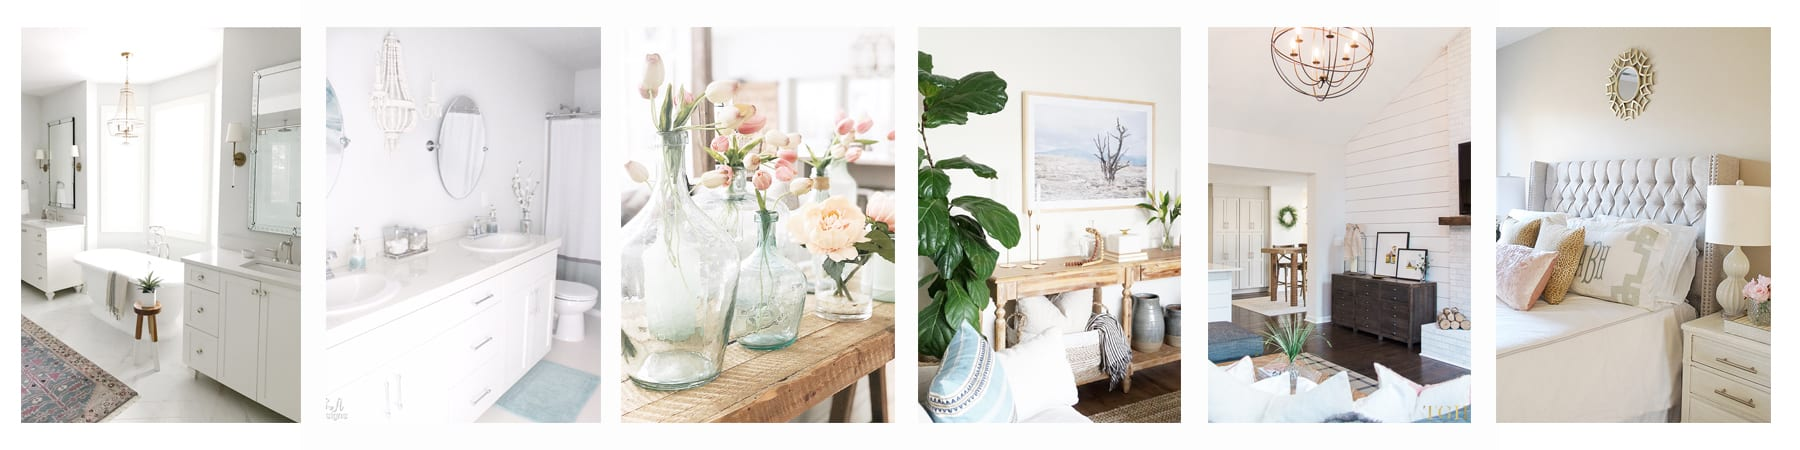 Thursday rooms we love collage with summer